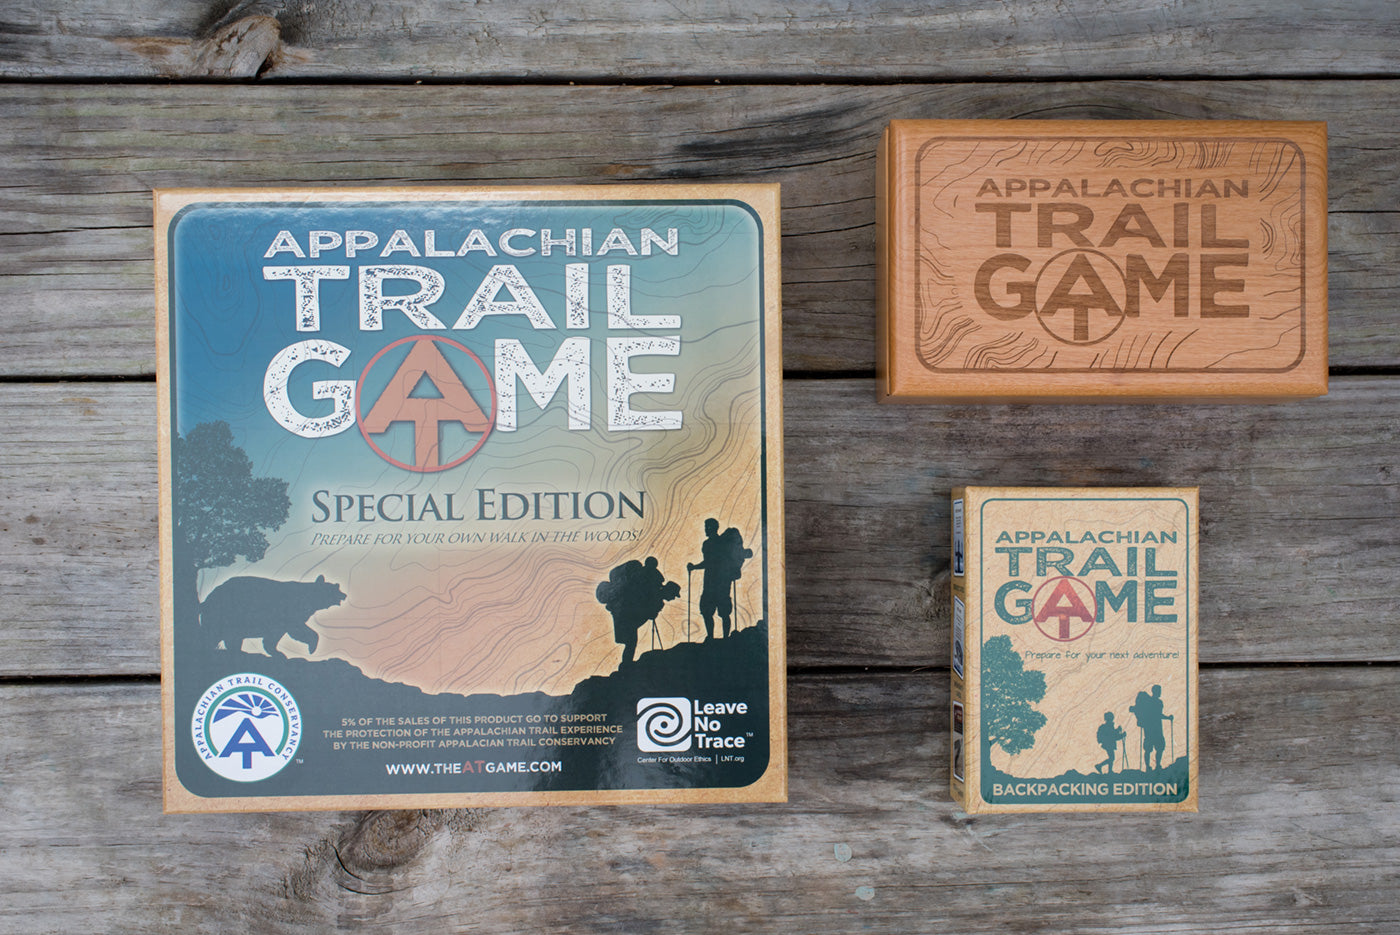 The AT Game Backpacking and Special Edition Board Game